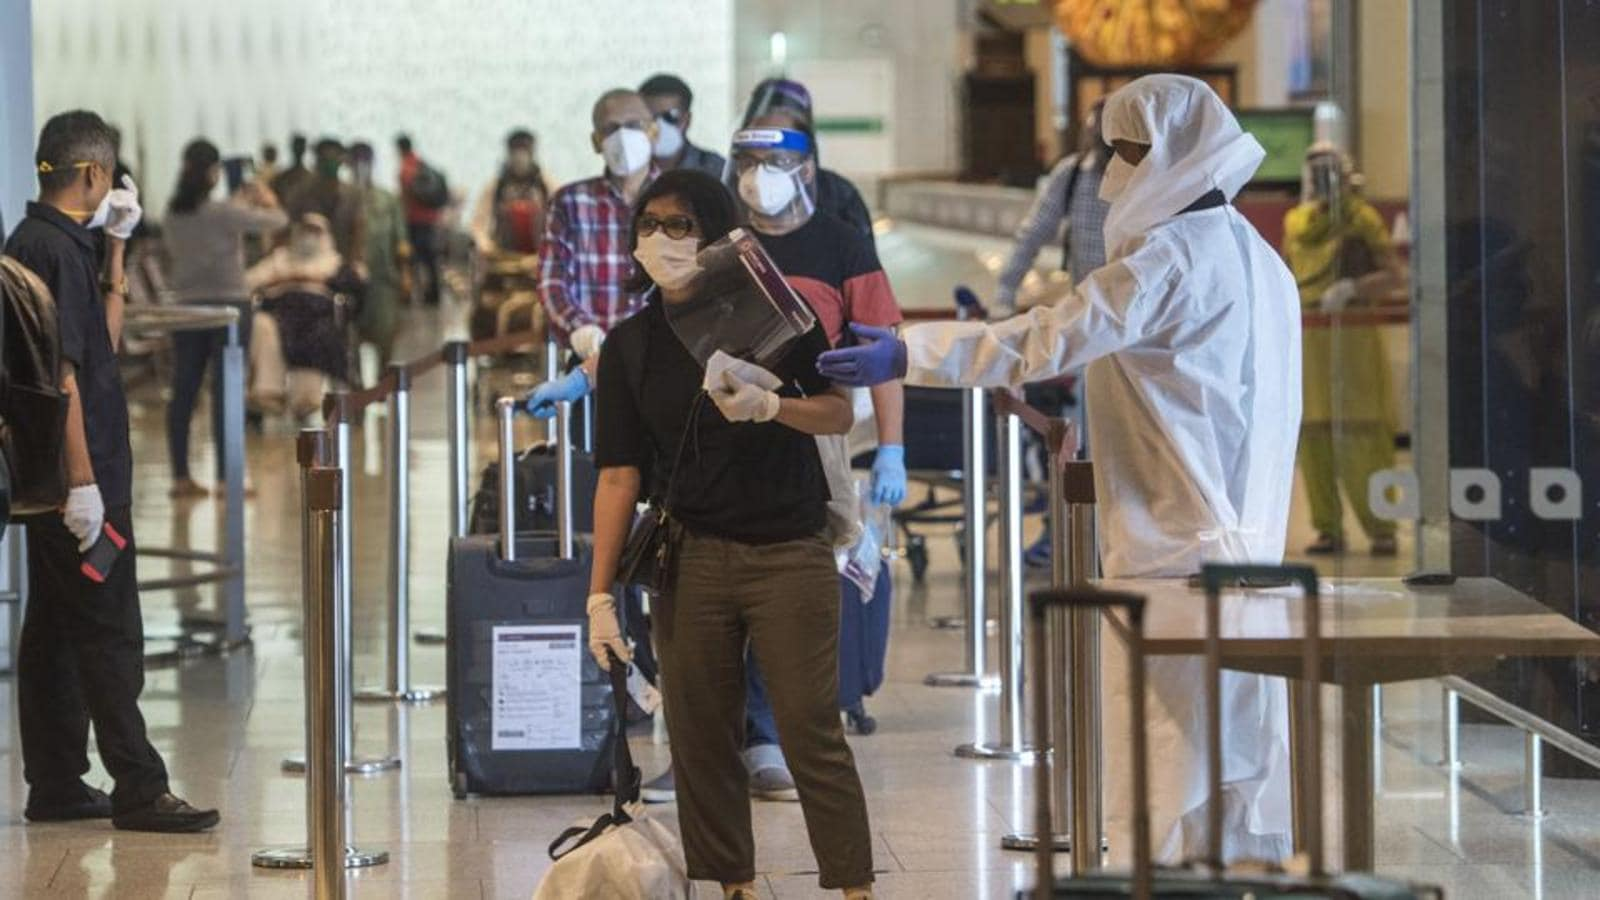 Mumbai airport's T1 sees 94,000 passengers in a week; to shift operations of a few IndiGo domestic flights from T2 to T1